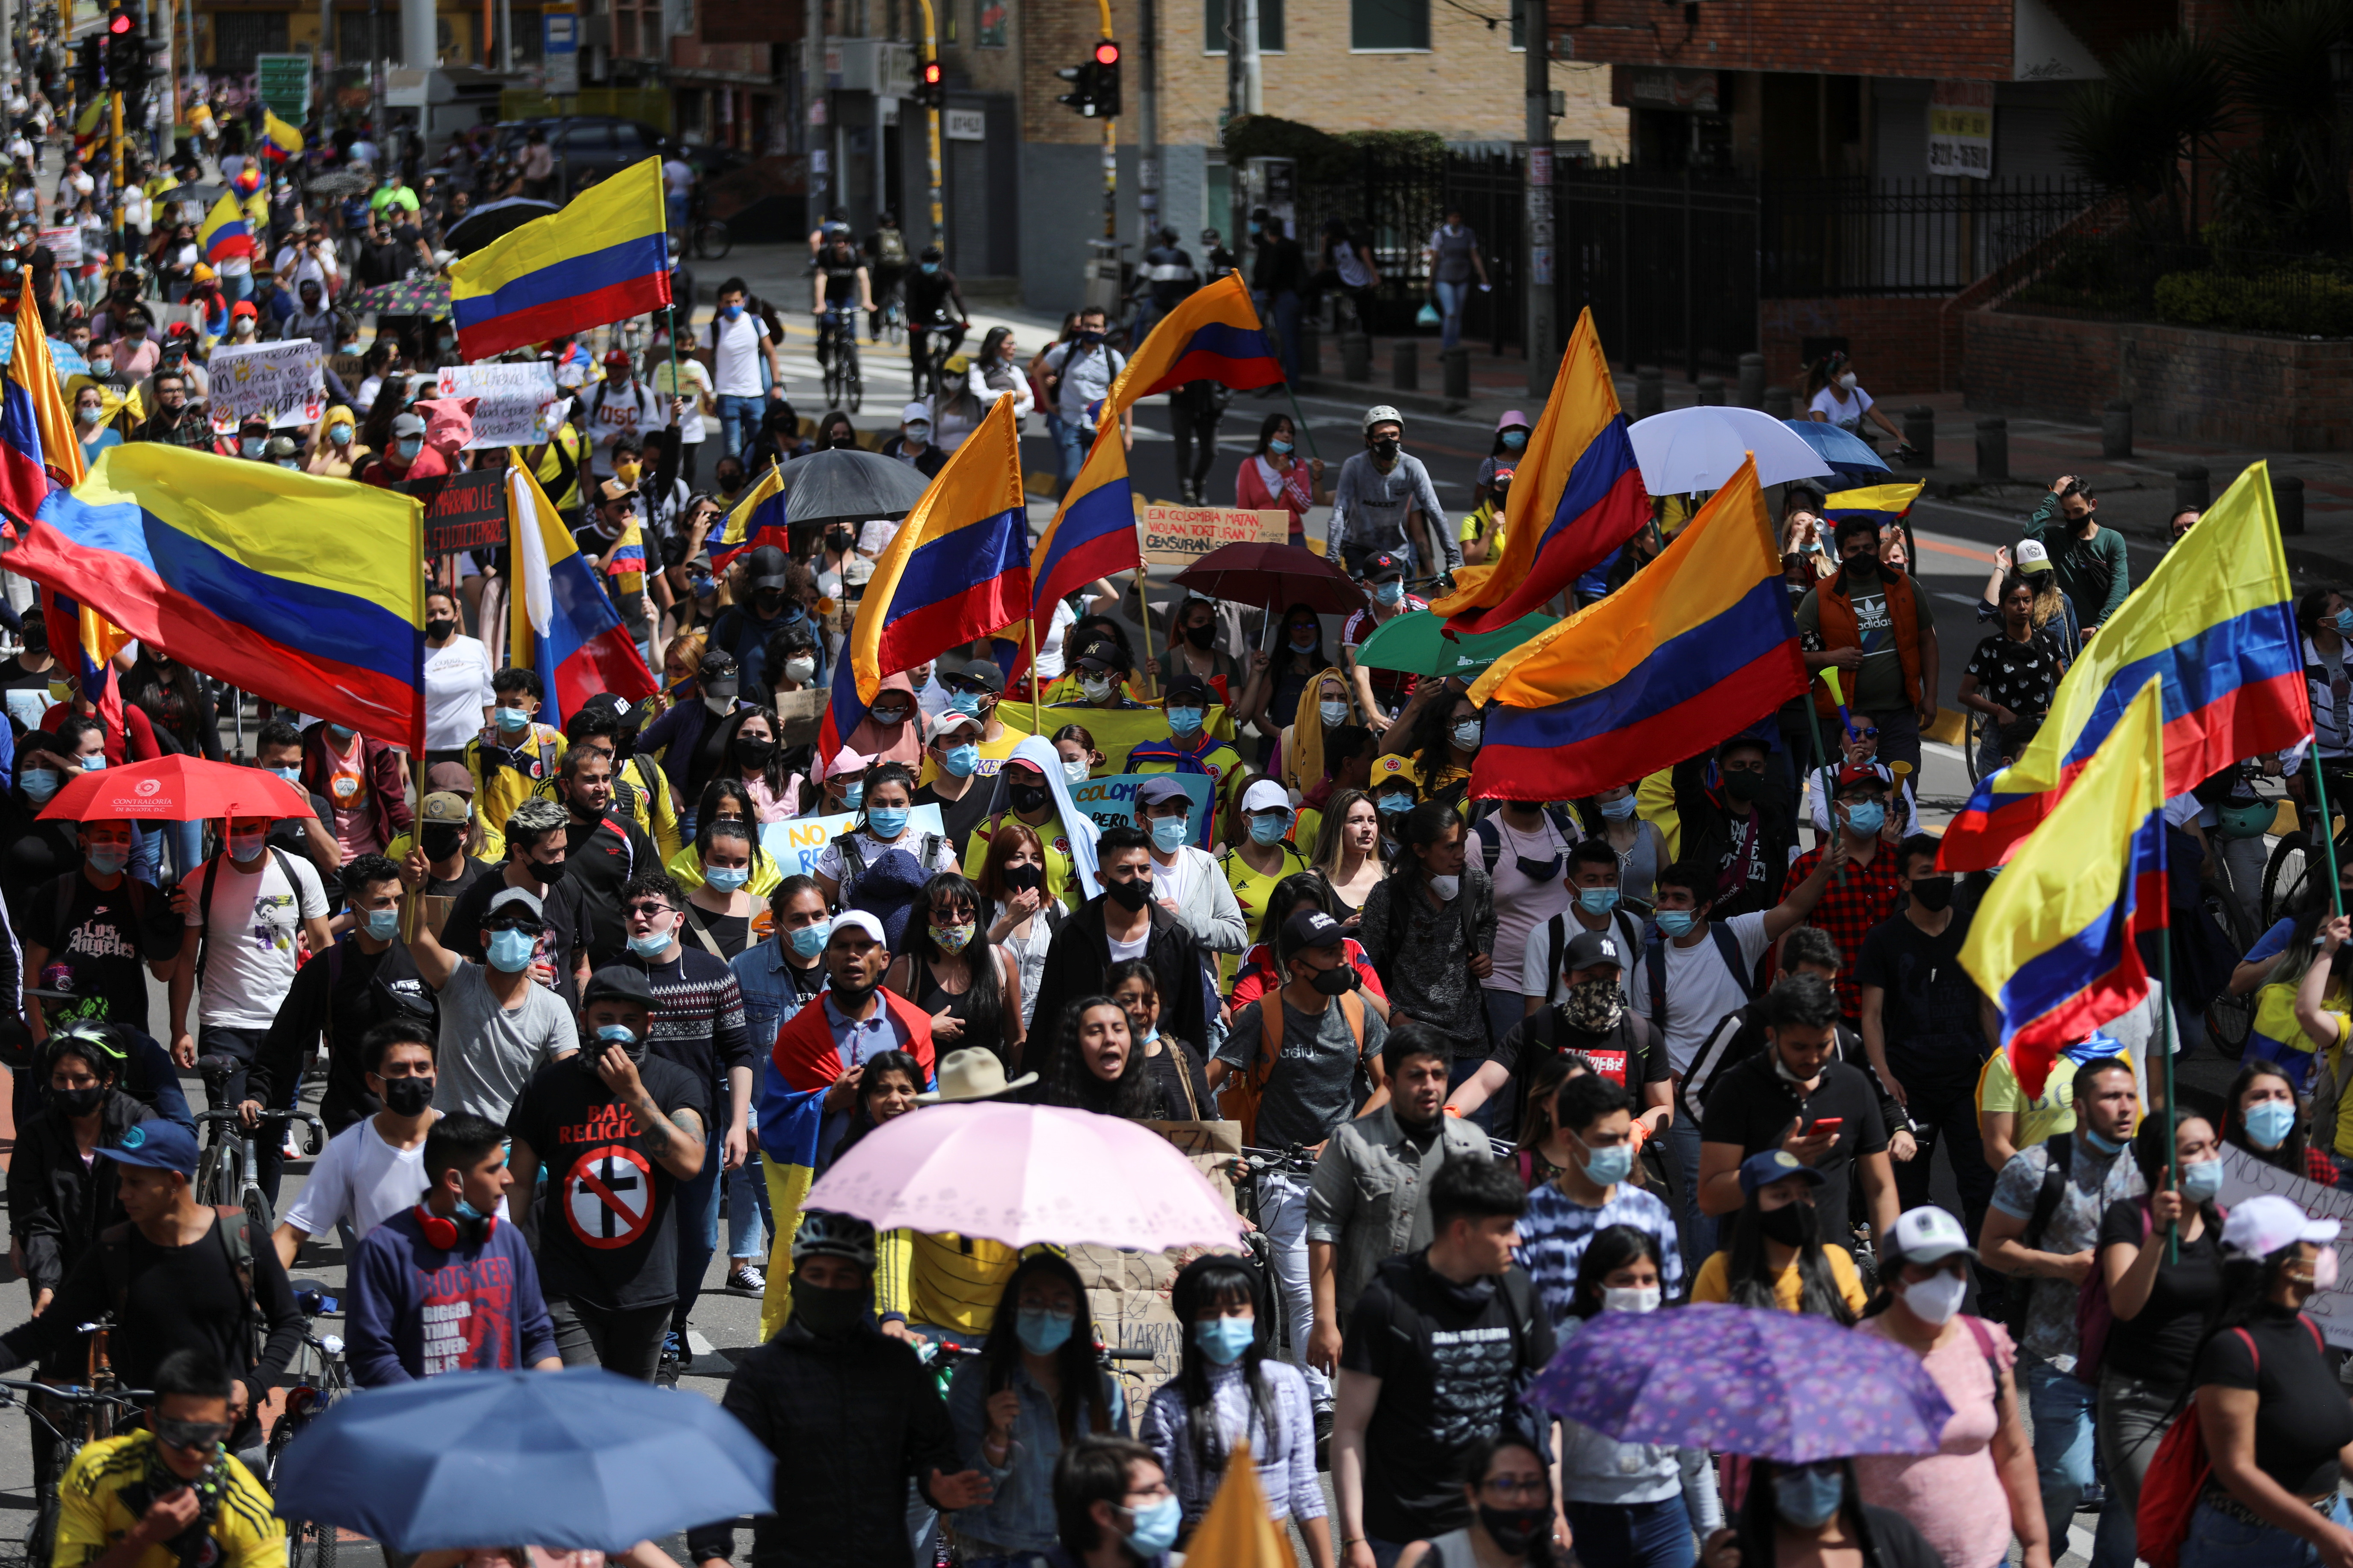 Demonstrators take part in a protest demanding government action to tackle poverty, police violence and inequalities in healthcare and education systems, in Bogota, Colombia, May 9, 2021.  REUTERS/Luisa Gonzalez